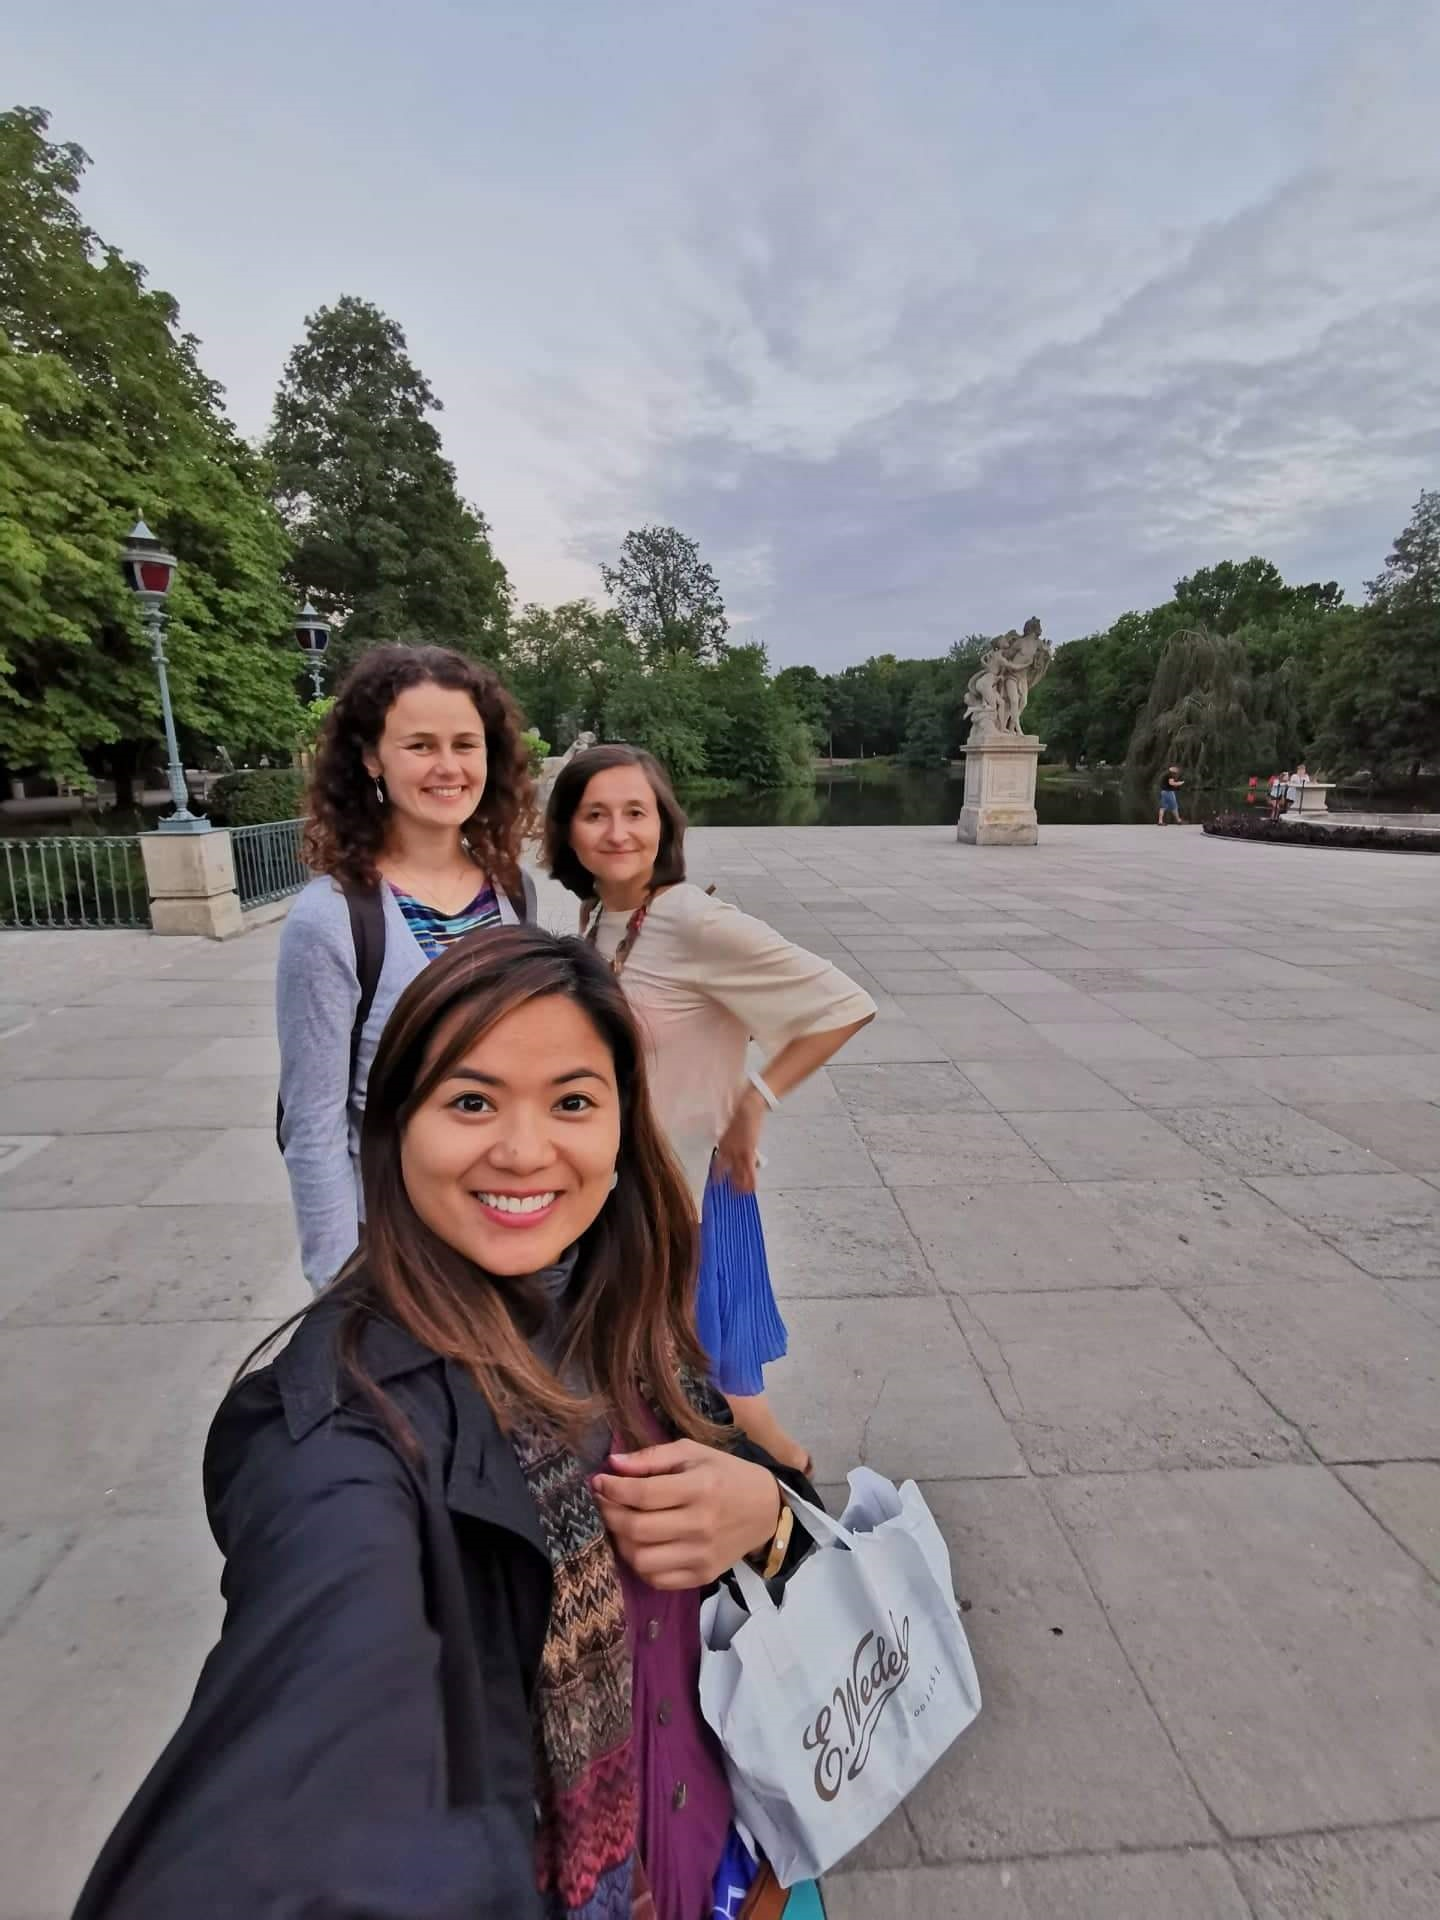 Step in Warsaw - City guide to Warsaw. A lovely tourist from Philippines is experiencing Warsaw in the company of two lovely residents of Warsaw:). Łazienki Królewskie (Royal Baths) - a summer residence of the last elective king of Poland Stanisław August Poniatowski (the 2nd half of the 18th century). Wedel's chocolate (the oldest chocolate factory in Poland) the best gift from Warsaw! Warsaw, 23.07.2019.